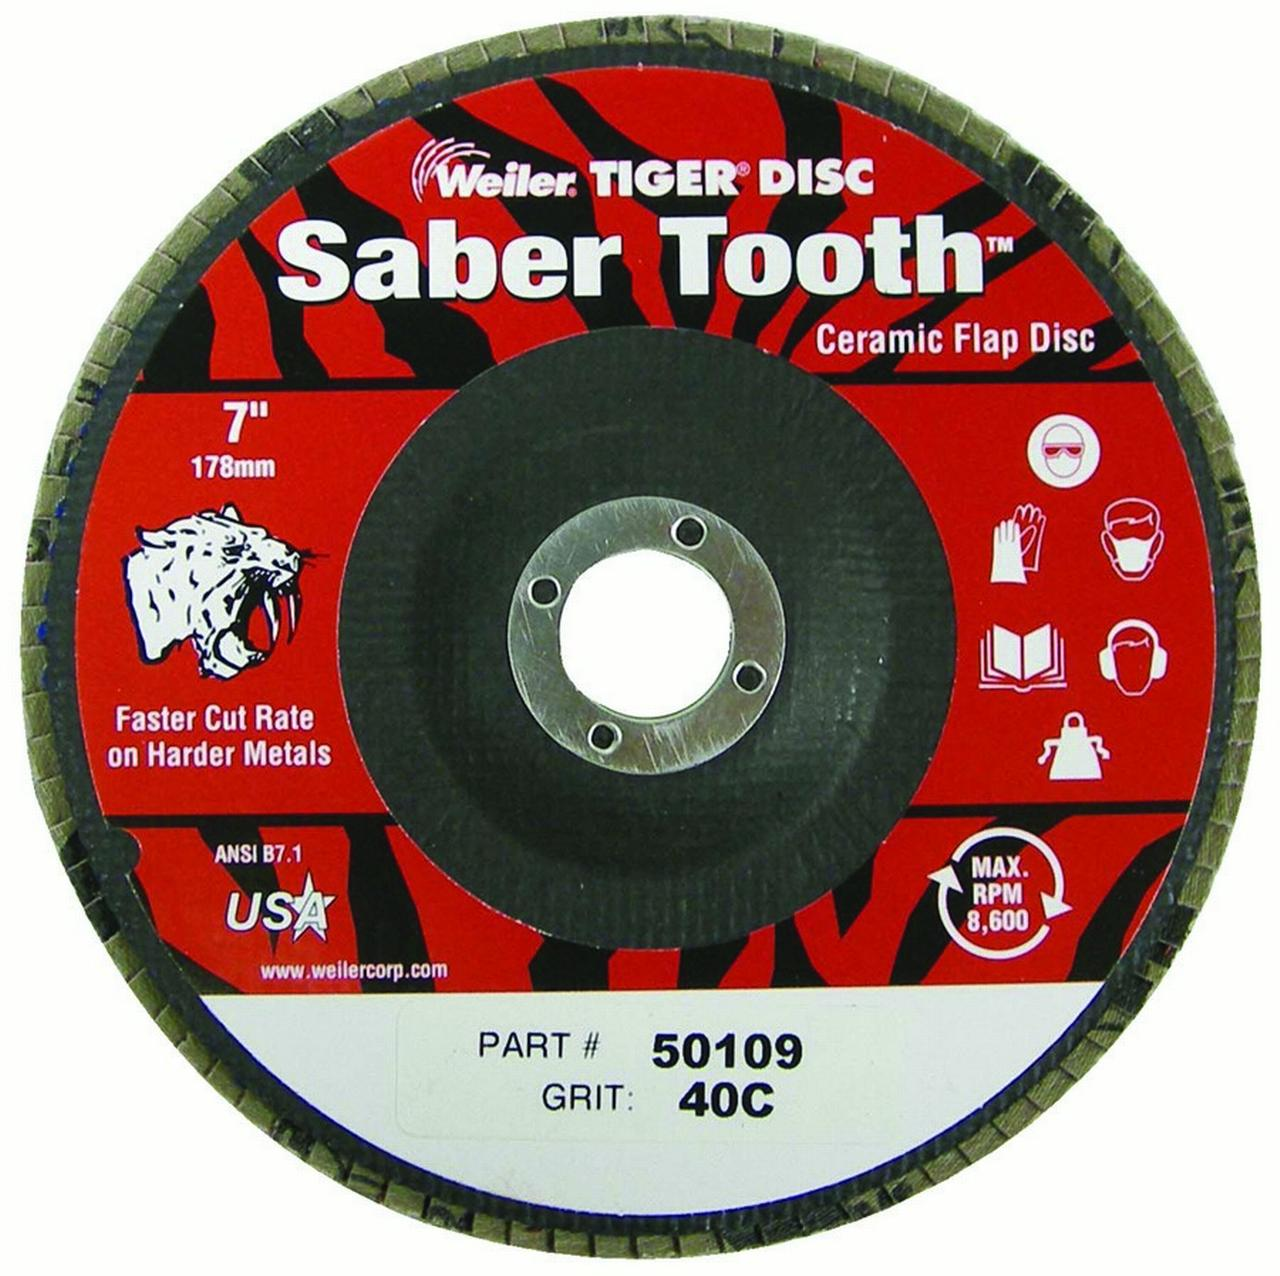 Saber Tooth Ceramic Flap Discs, 4 1/2 In, 36 Grit, 5/8 Arbor, 13,000 Rpm